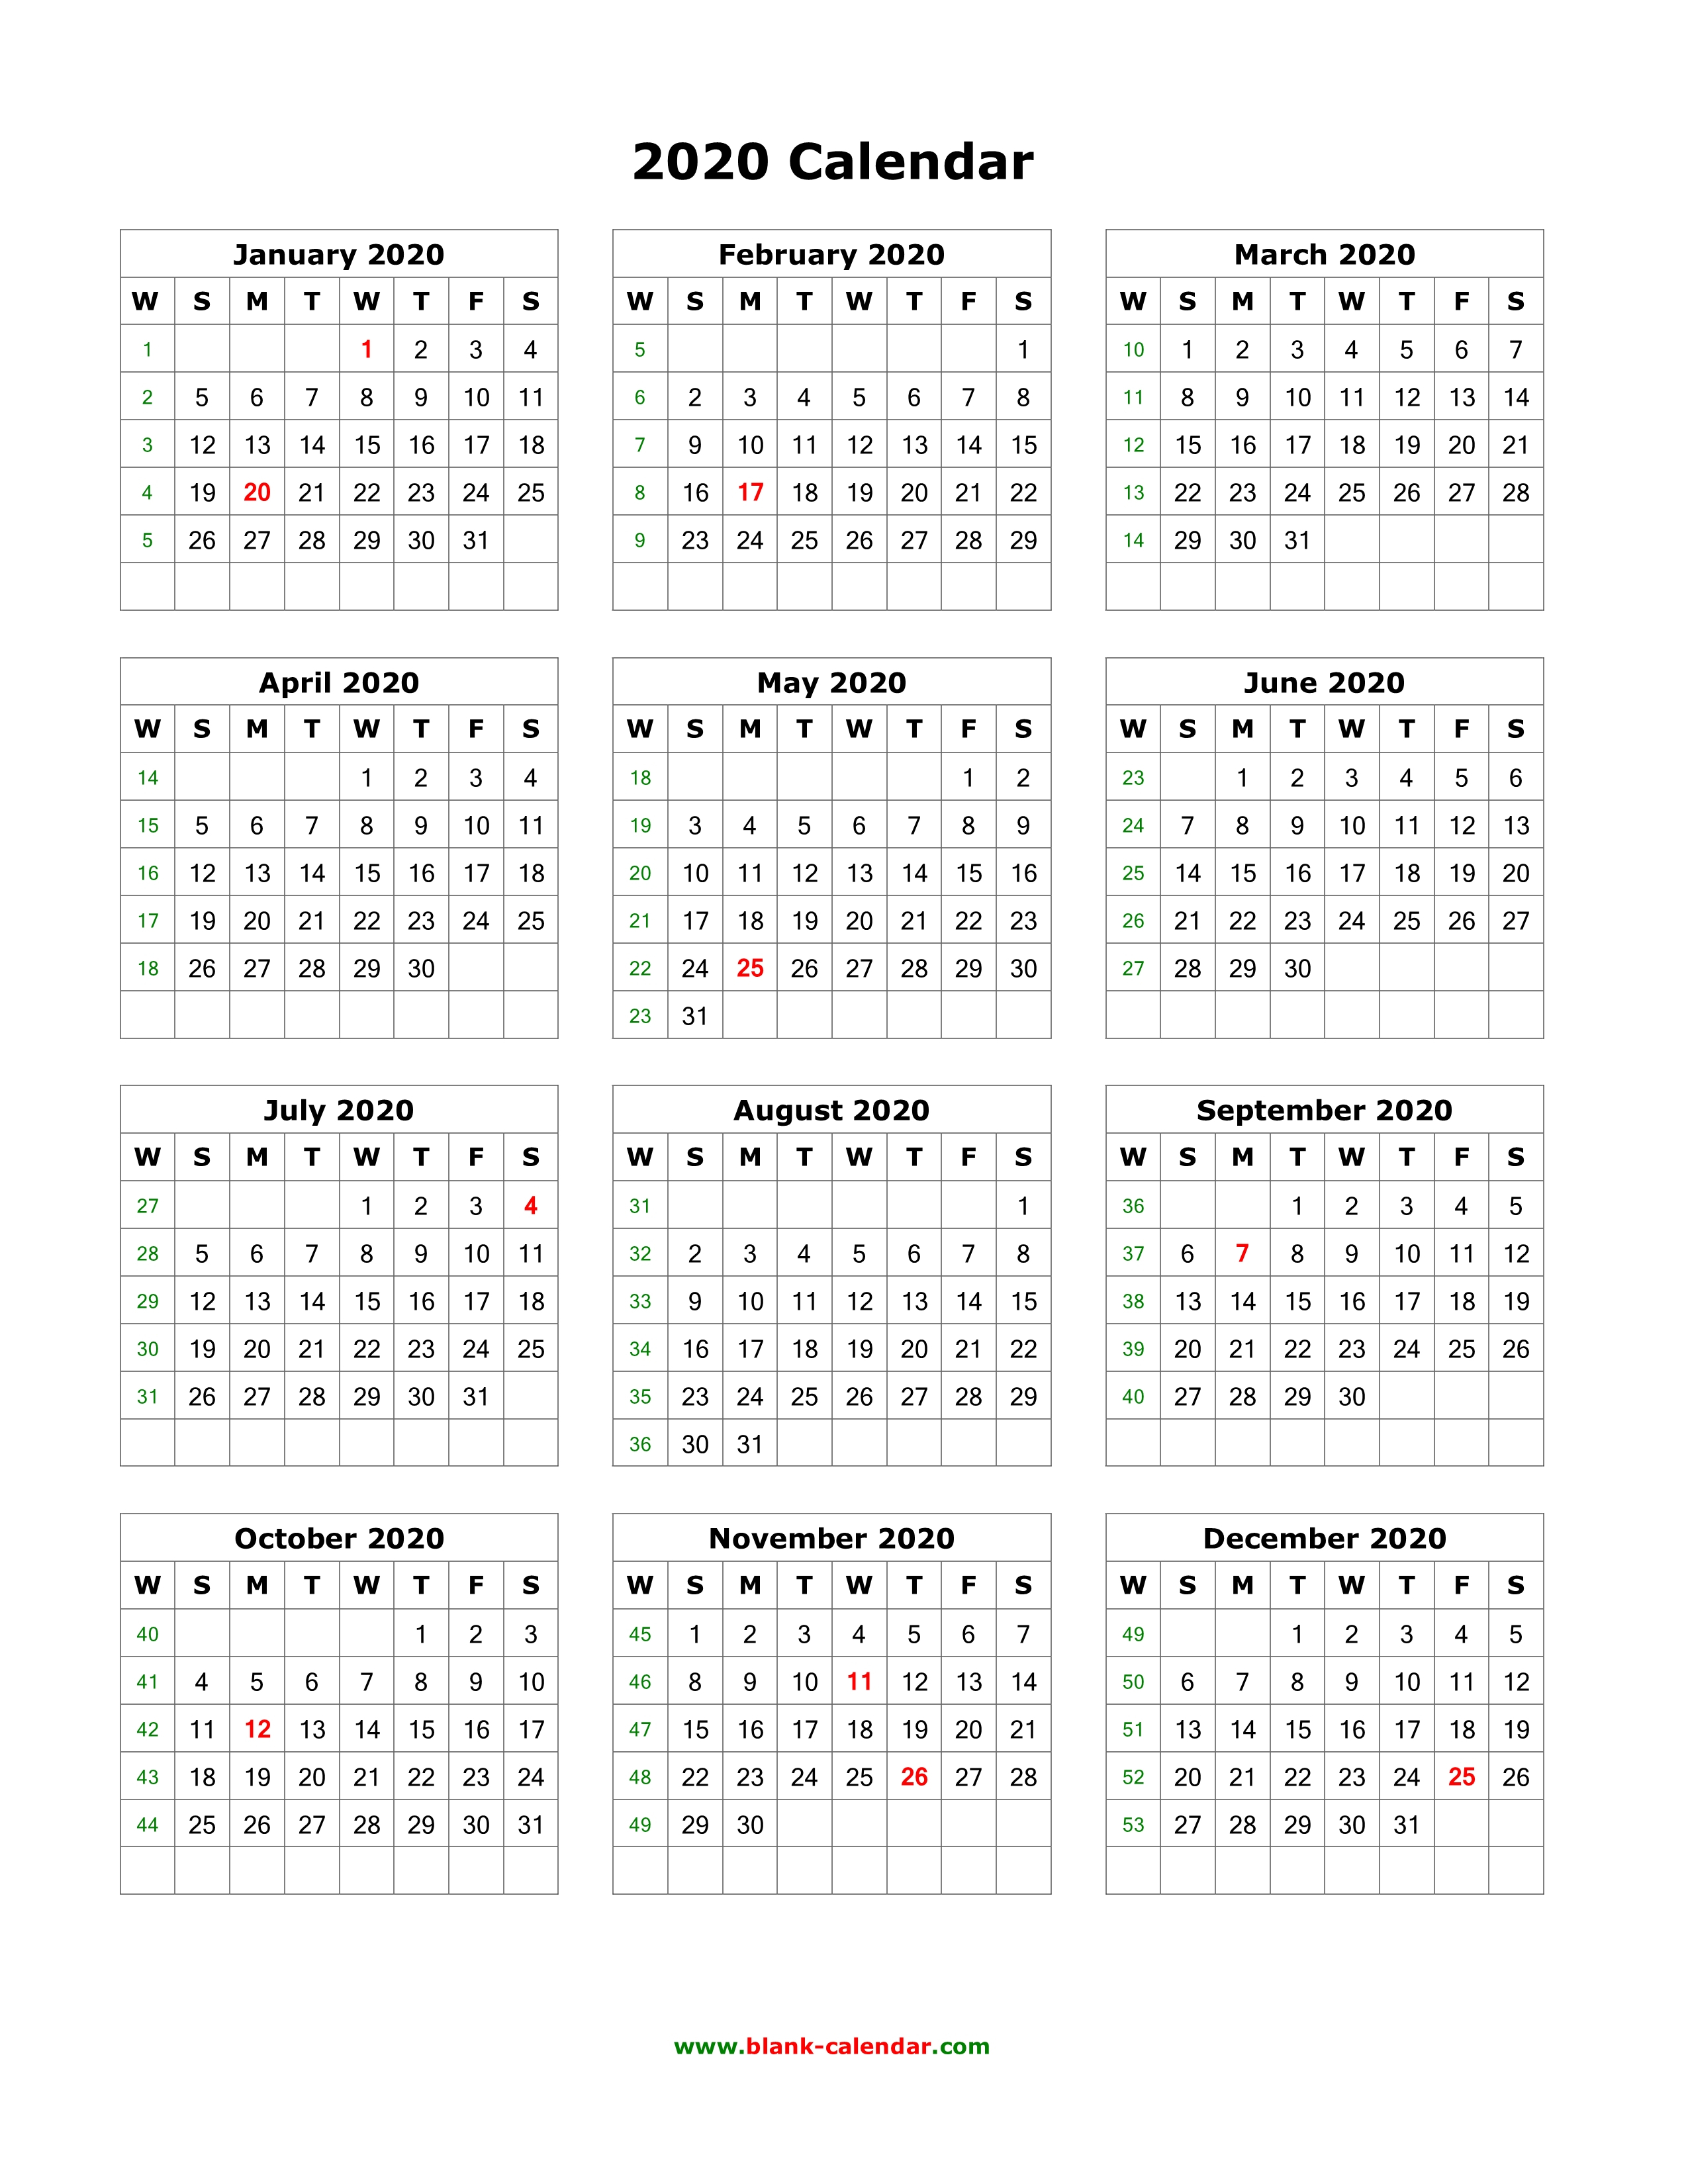 Download Blank Calendar 2020 (12 Months On One Page, Vertical)